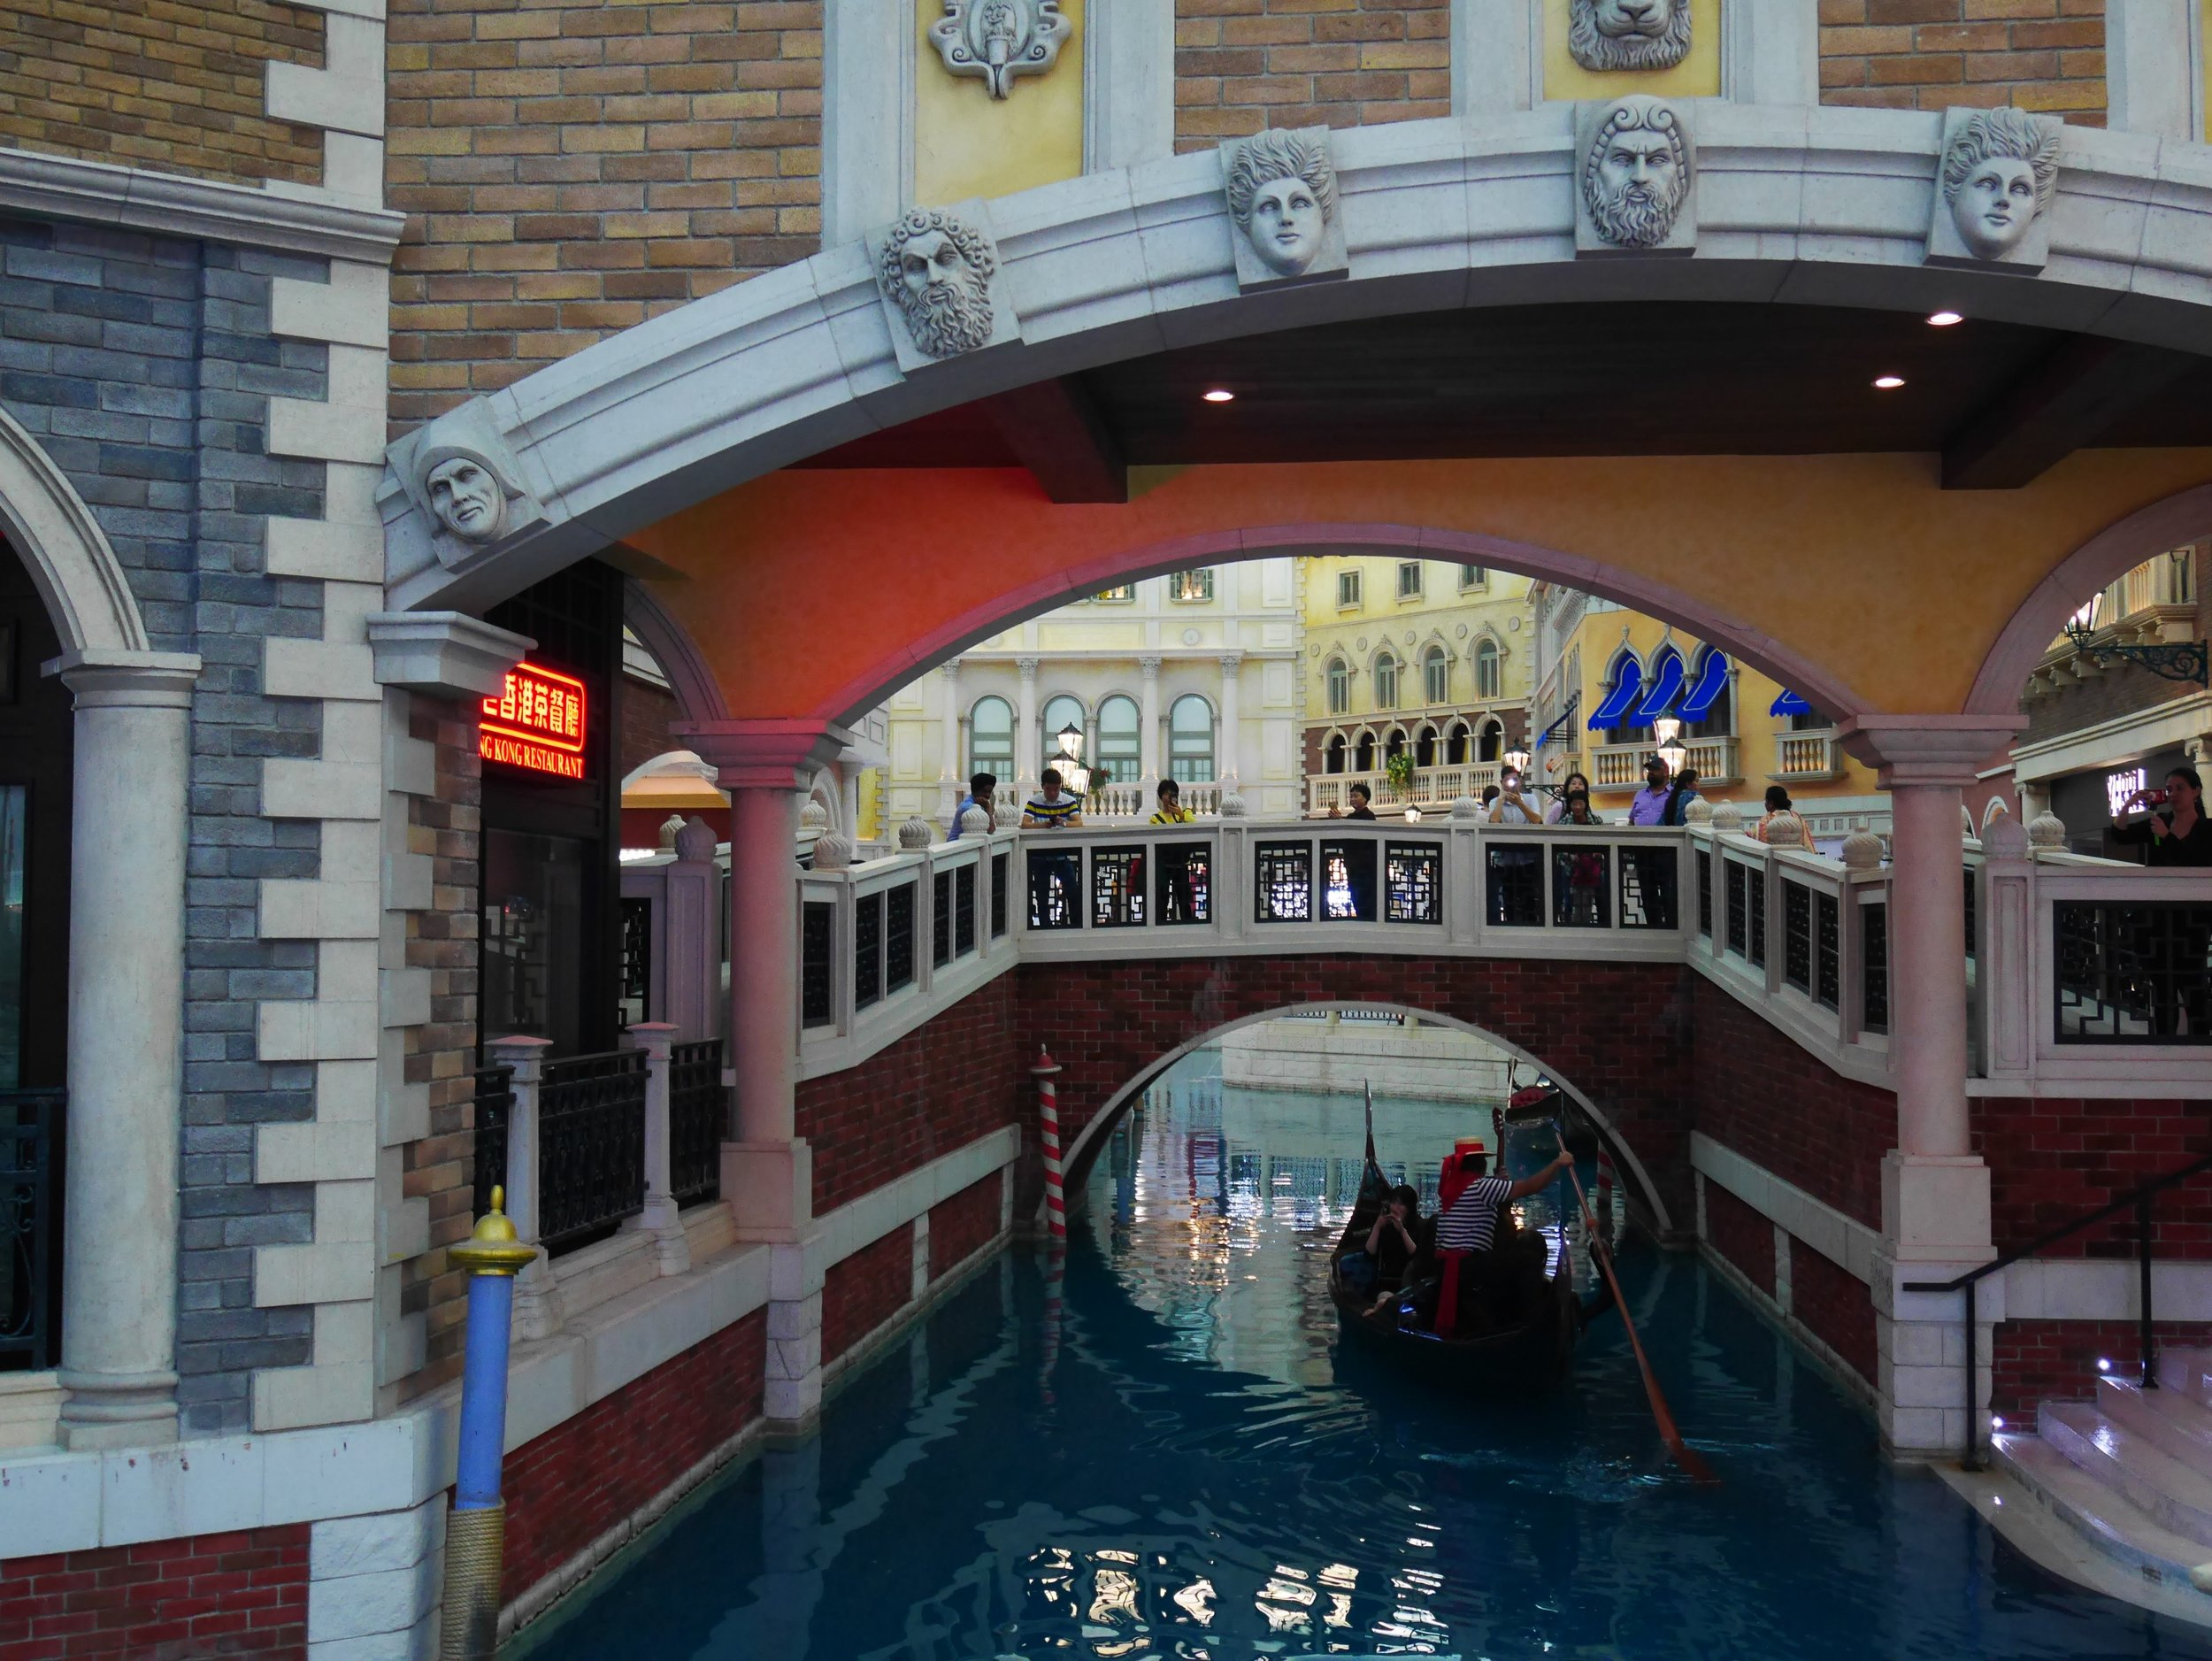 there are many shops and restaurants at the canal area of the Venetian Macau